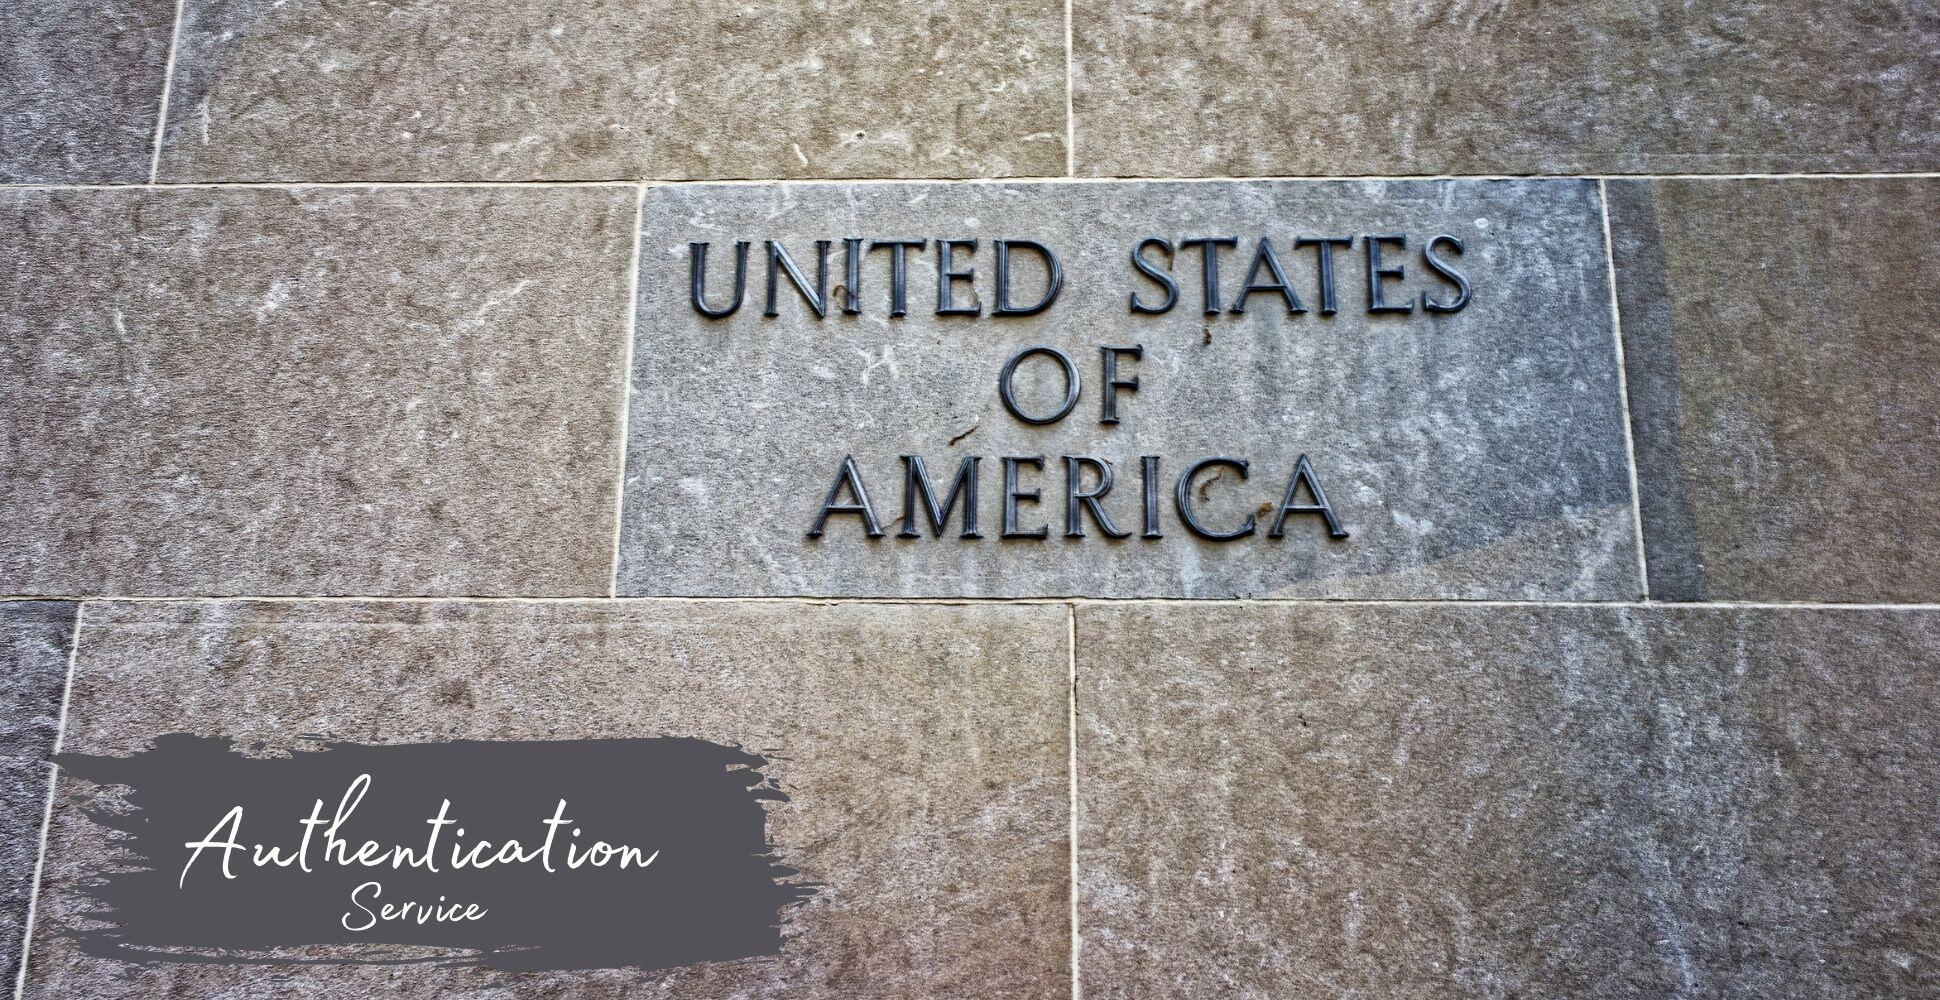 U.S State Department Authentication and Notary Services In Boston MA